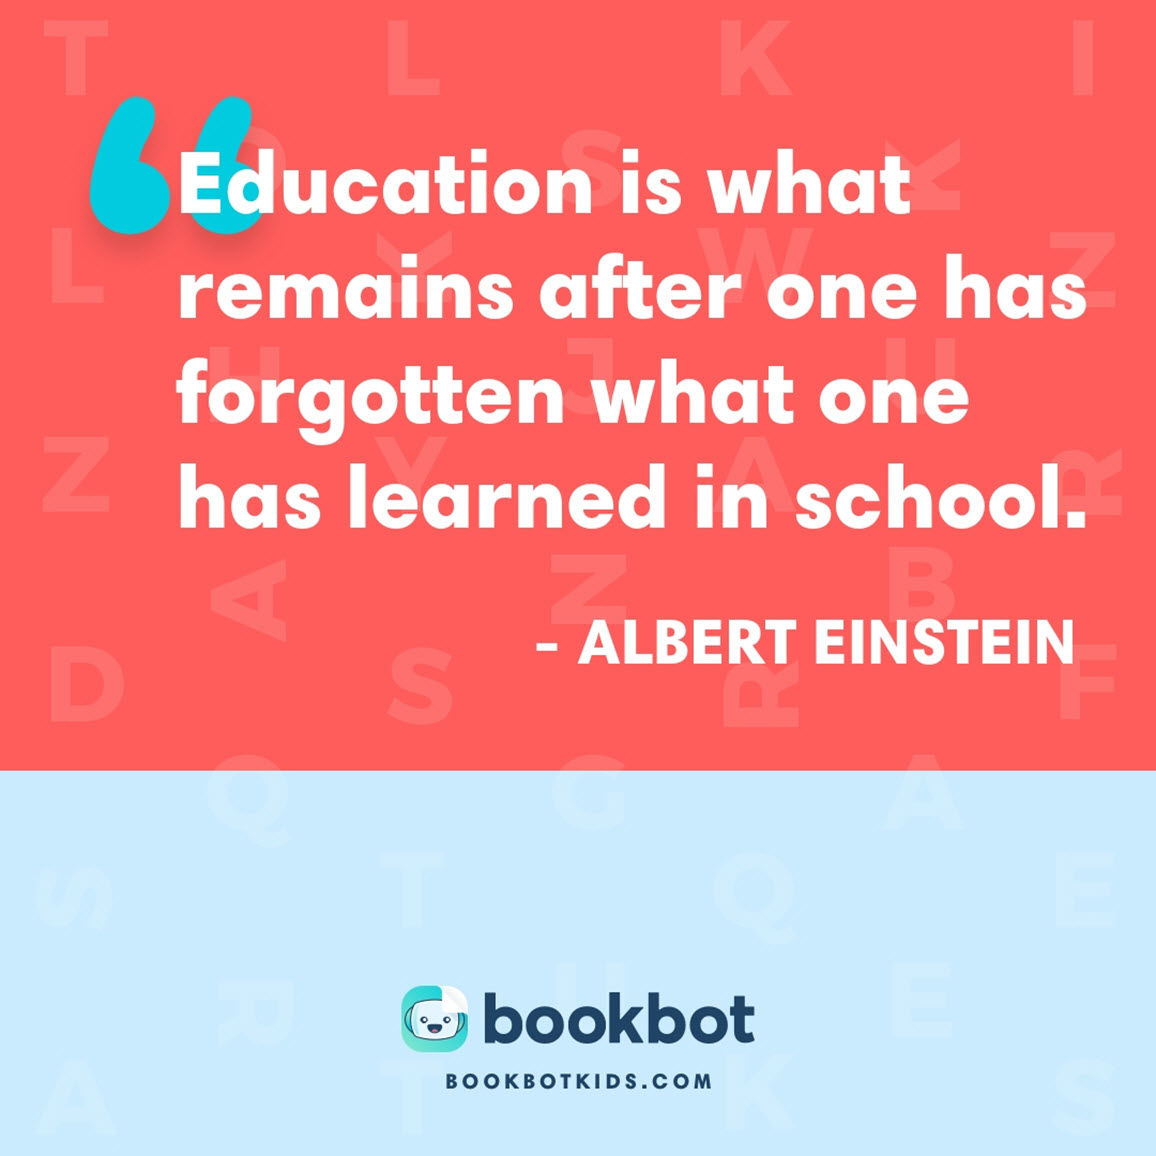 Education is what remains after one has forgotten what one has learned in school. – Albert Einstein